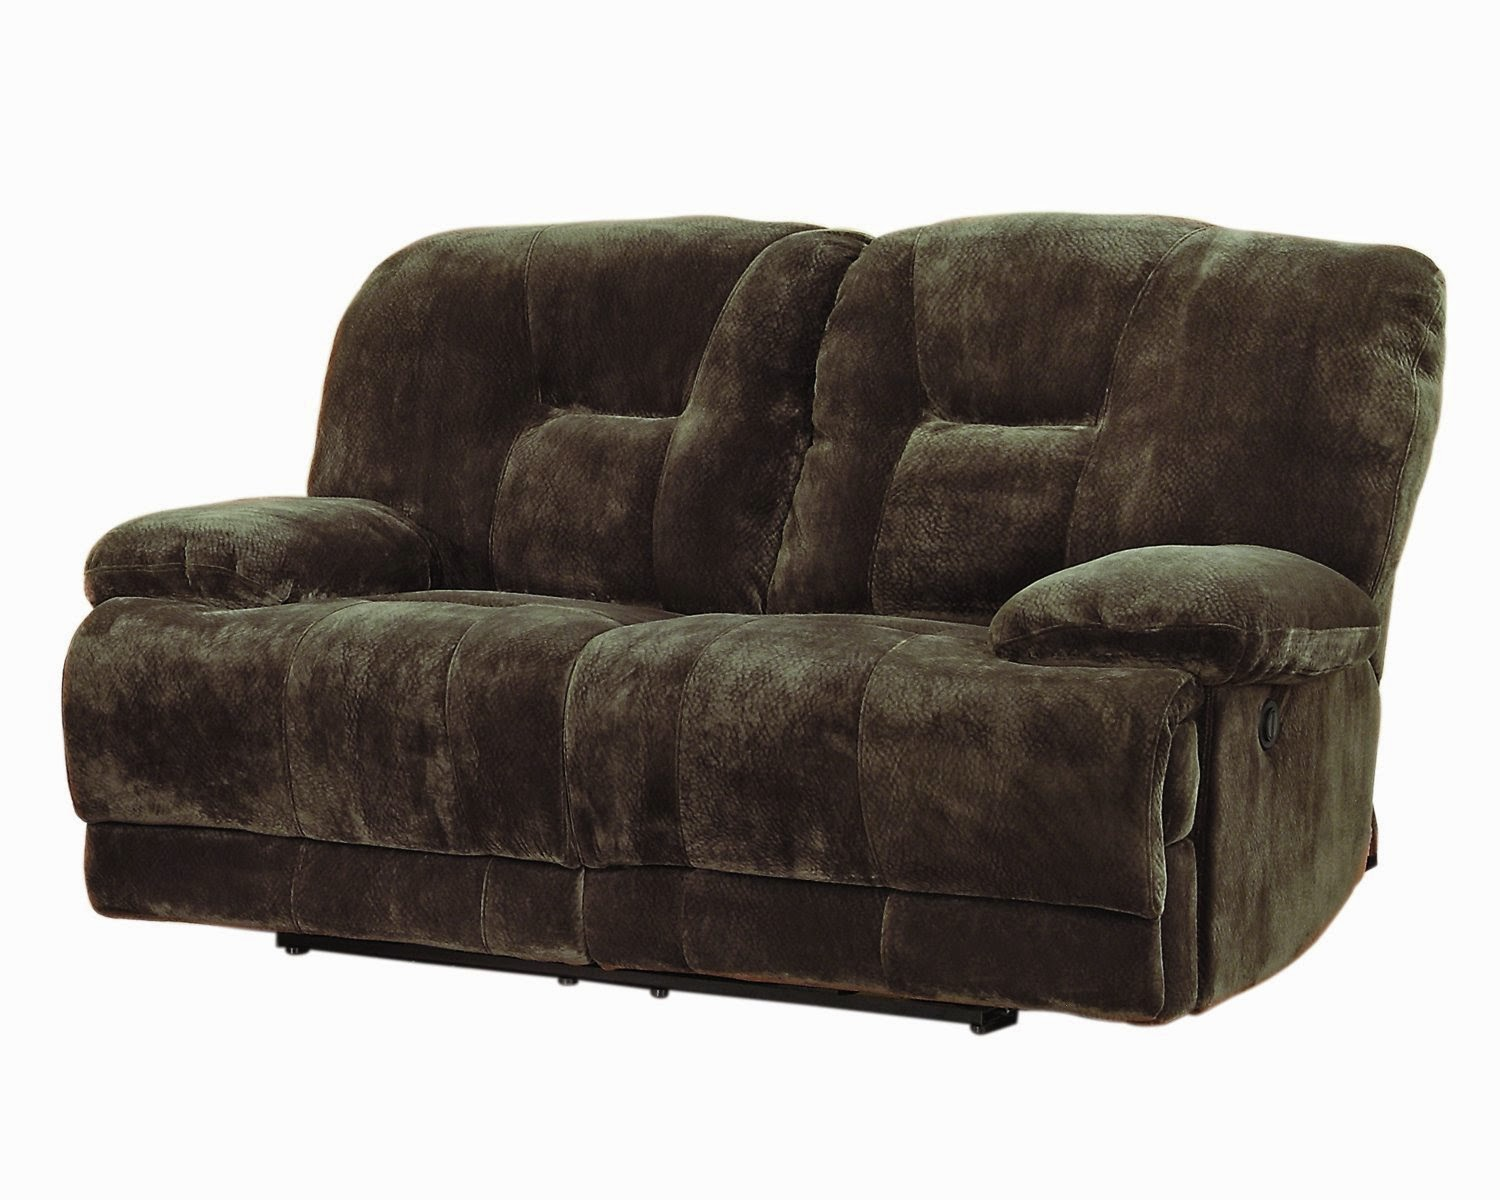 Where Is The Best Place To Buy Recliner Sofa 2 Seater Recliner Fabric Sofa